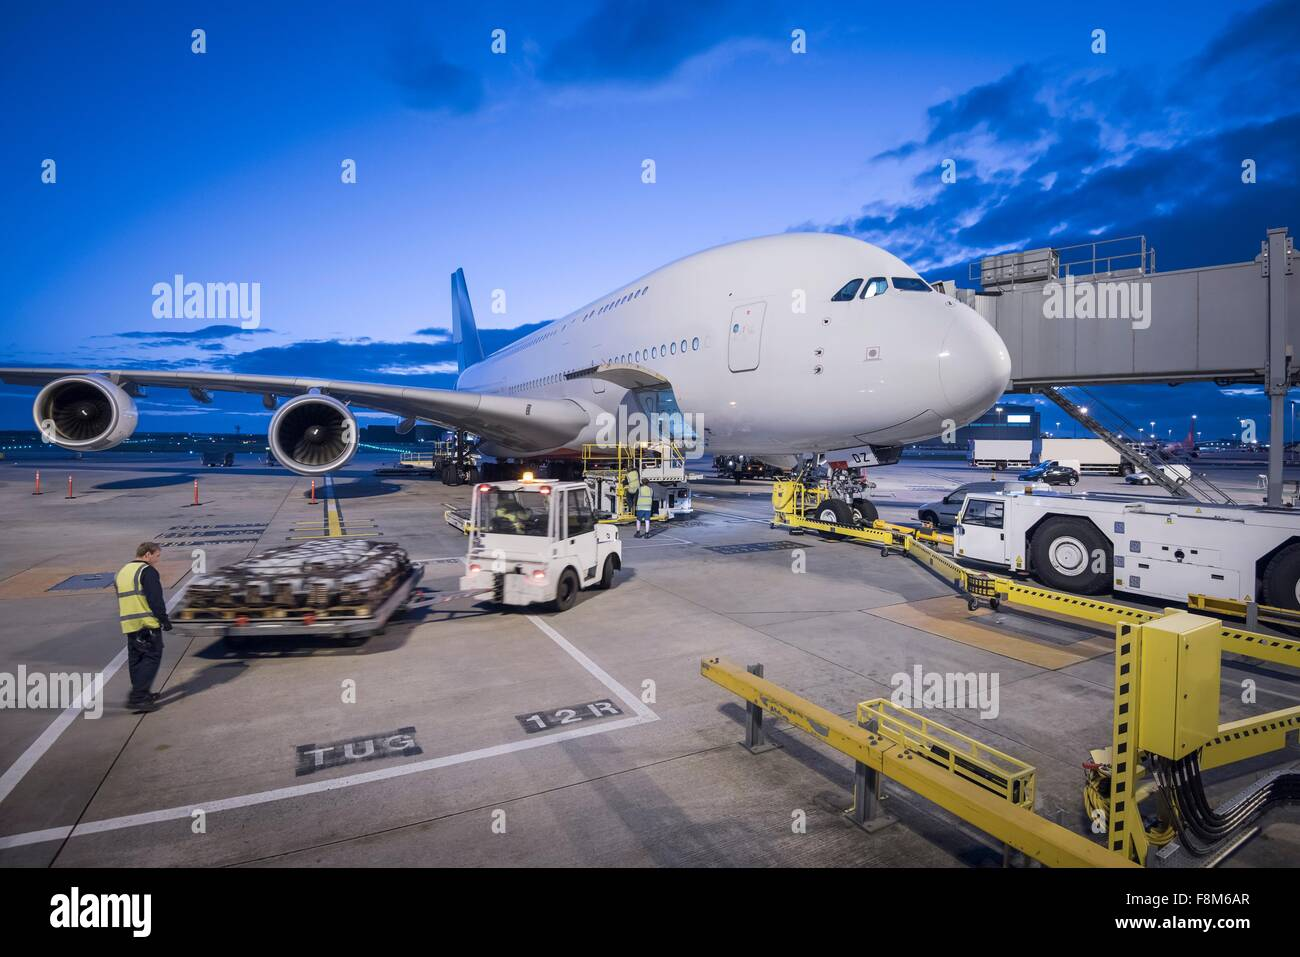 Ground crew attach tug to A380 aircraft on stand at dusk at airport - Stock Image